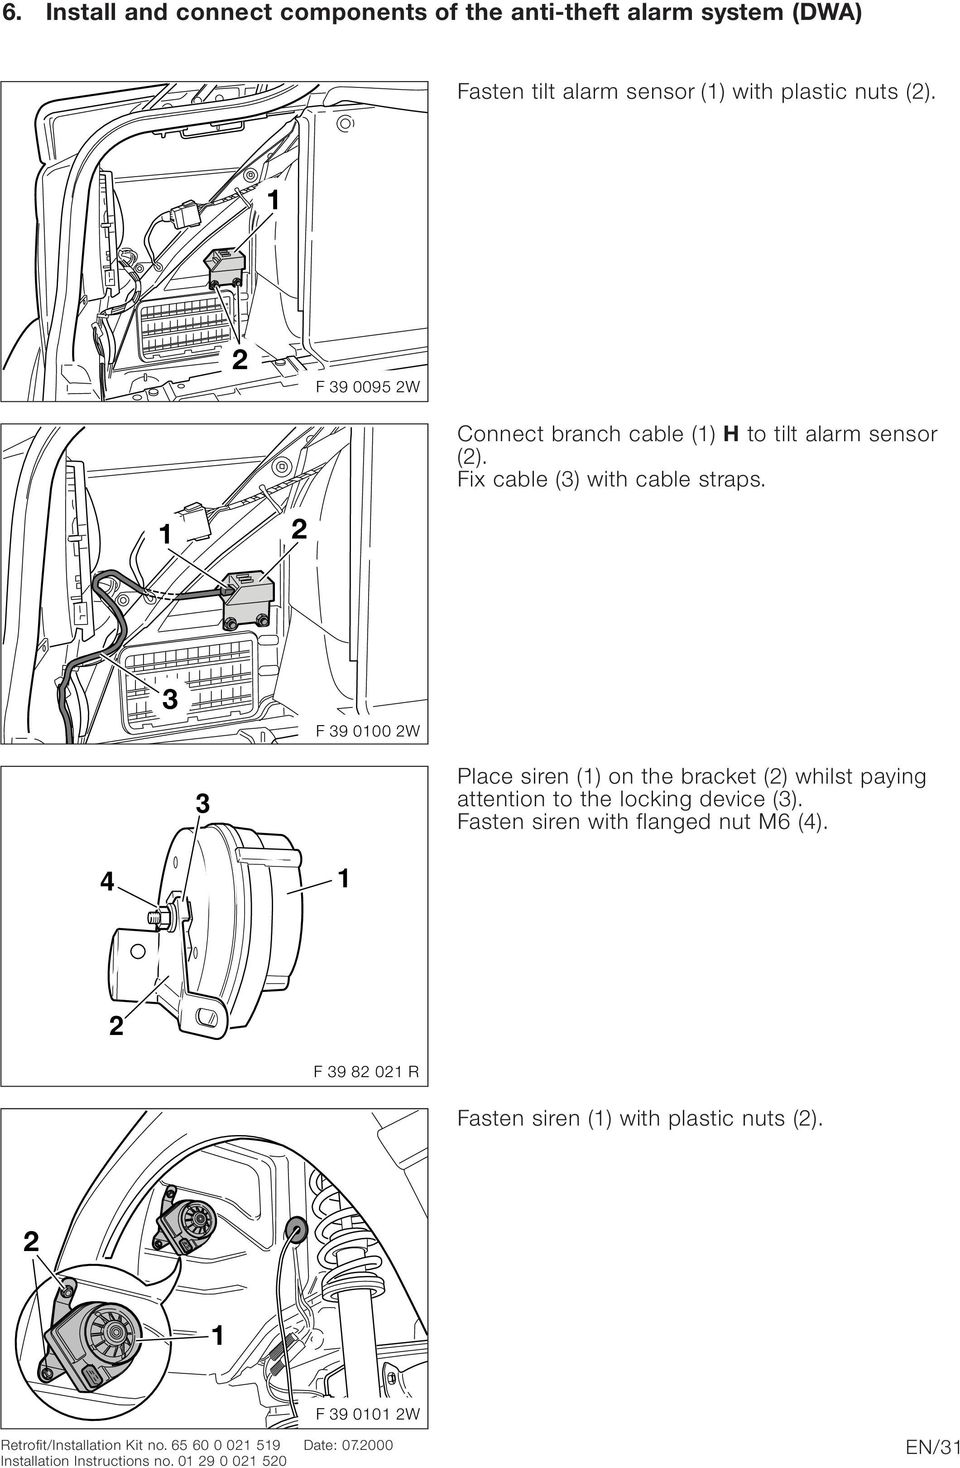 Bmw Parts And Accessories Installation Instructions Pdf Miata Engine Plastic Skirt Diagram F 9 000 W Place Siren On The Bracket Whilst Paying Attention